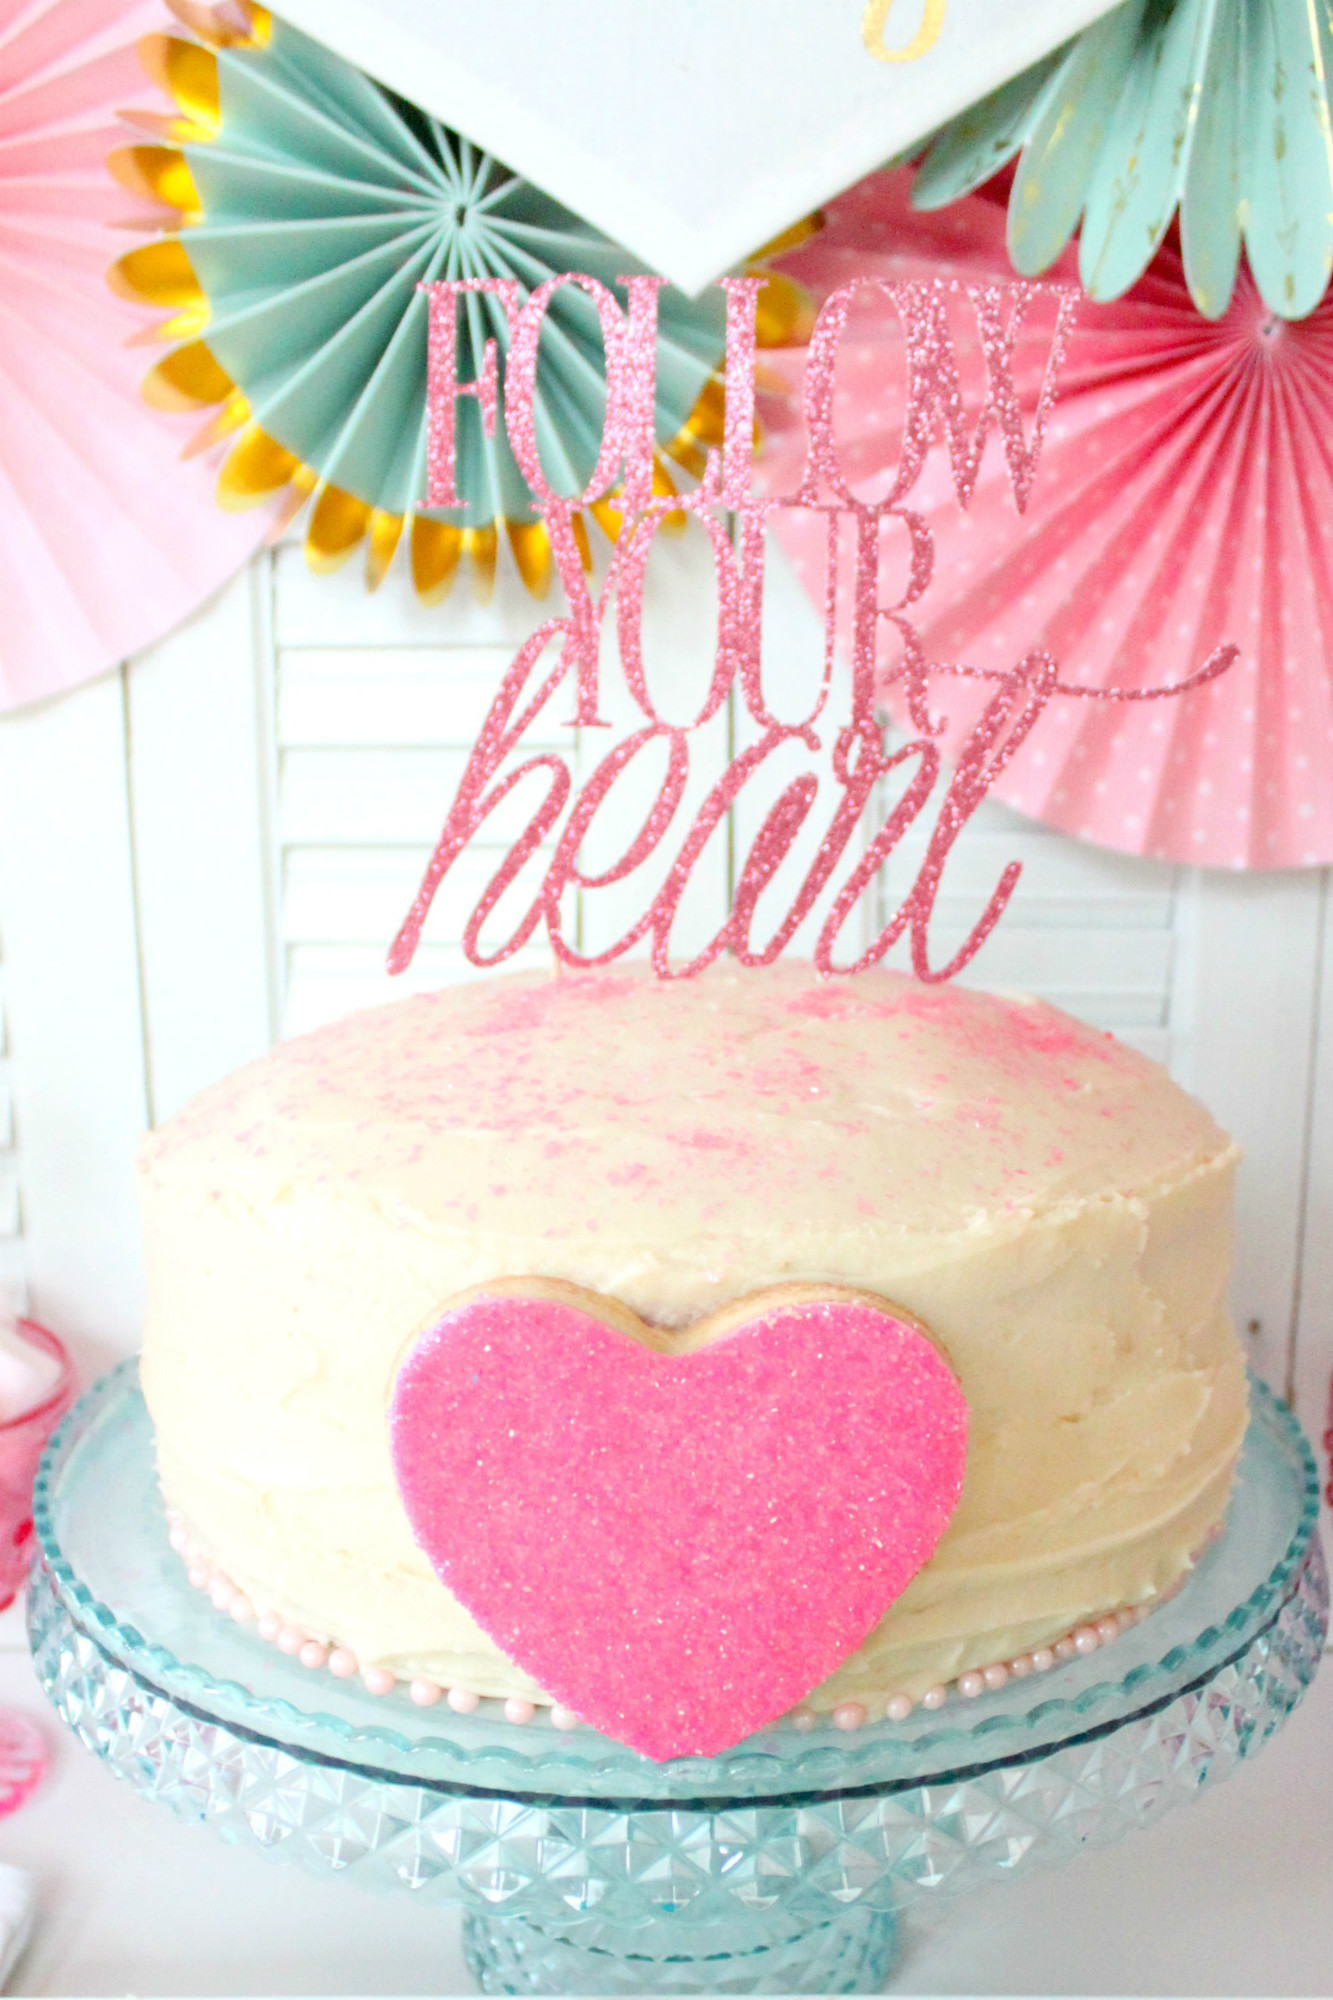 Pink Champagne Cake with Homemade Buttercream Frosting from Follow Your Heart Galentine's Day Party Dessert Table | Black Twine | The Party Porch